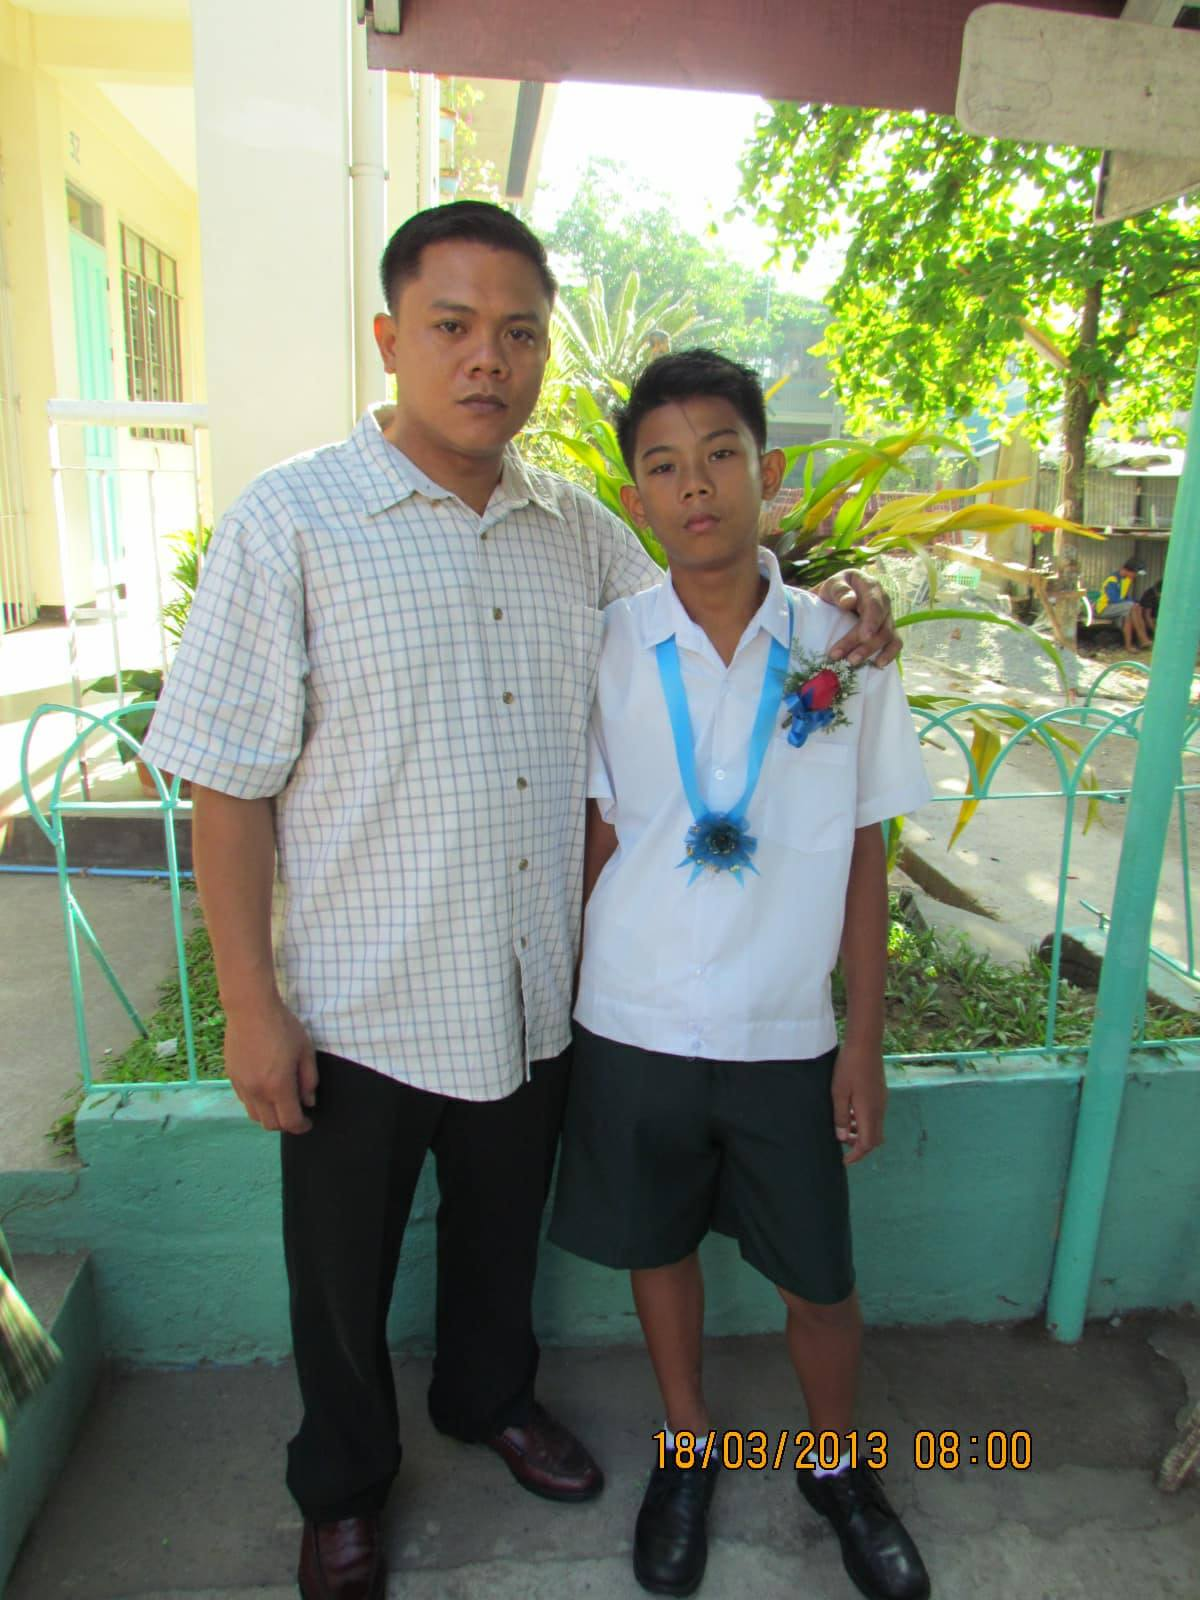 PROUD. Joaquin poses with his son Kiesten during his elementary graduation. Photo from Joaquin Nonan